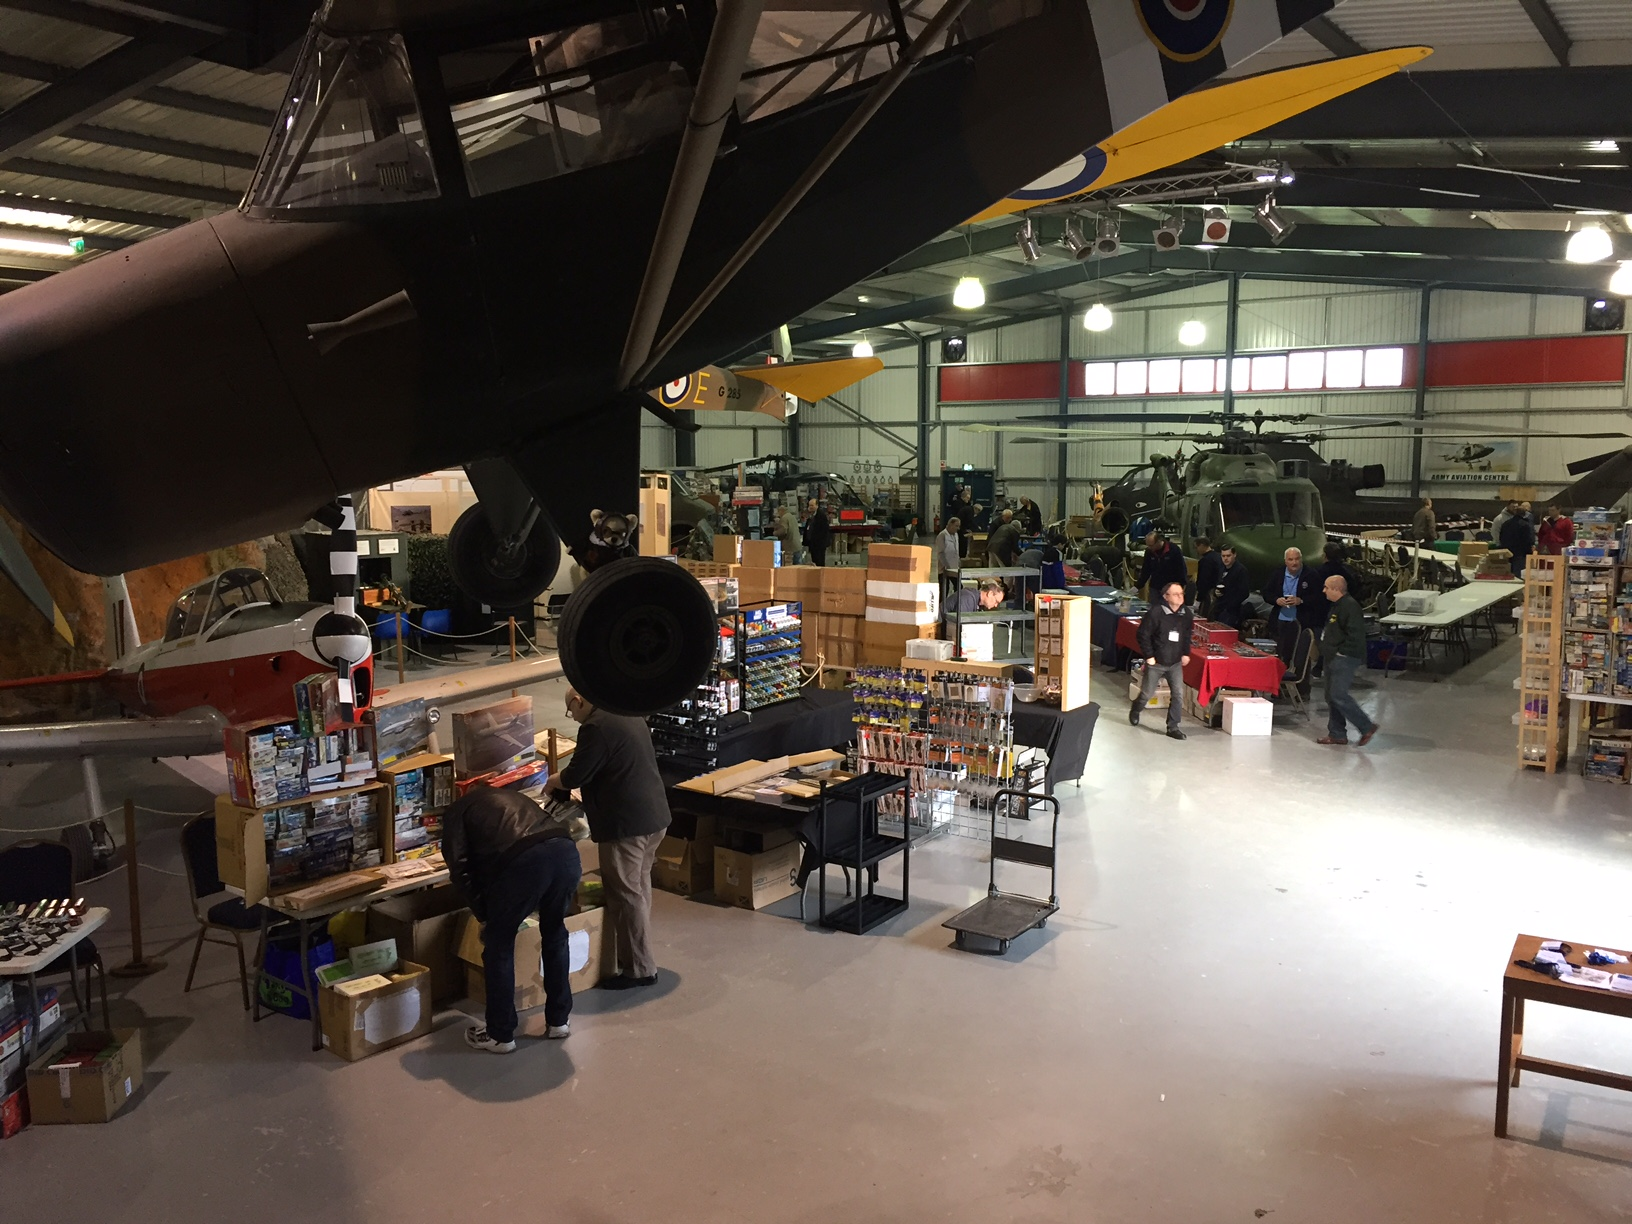 Aircraft Enthusiast Fair and Model Show